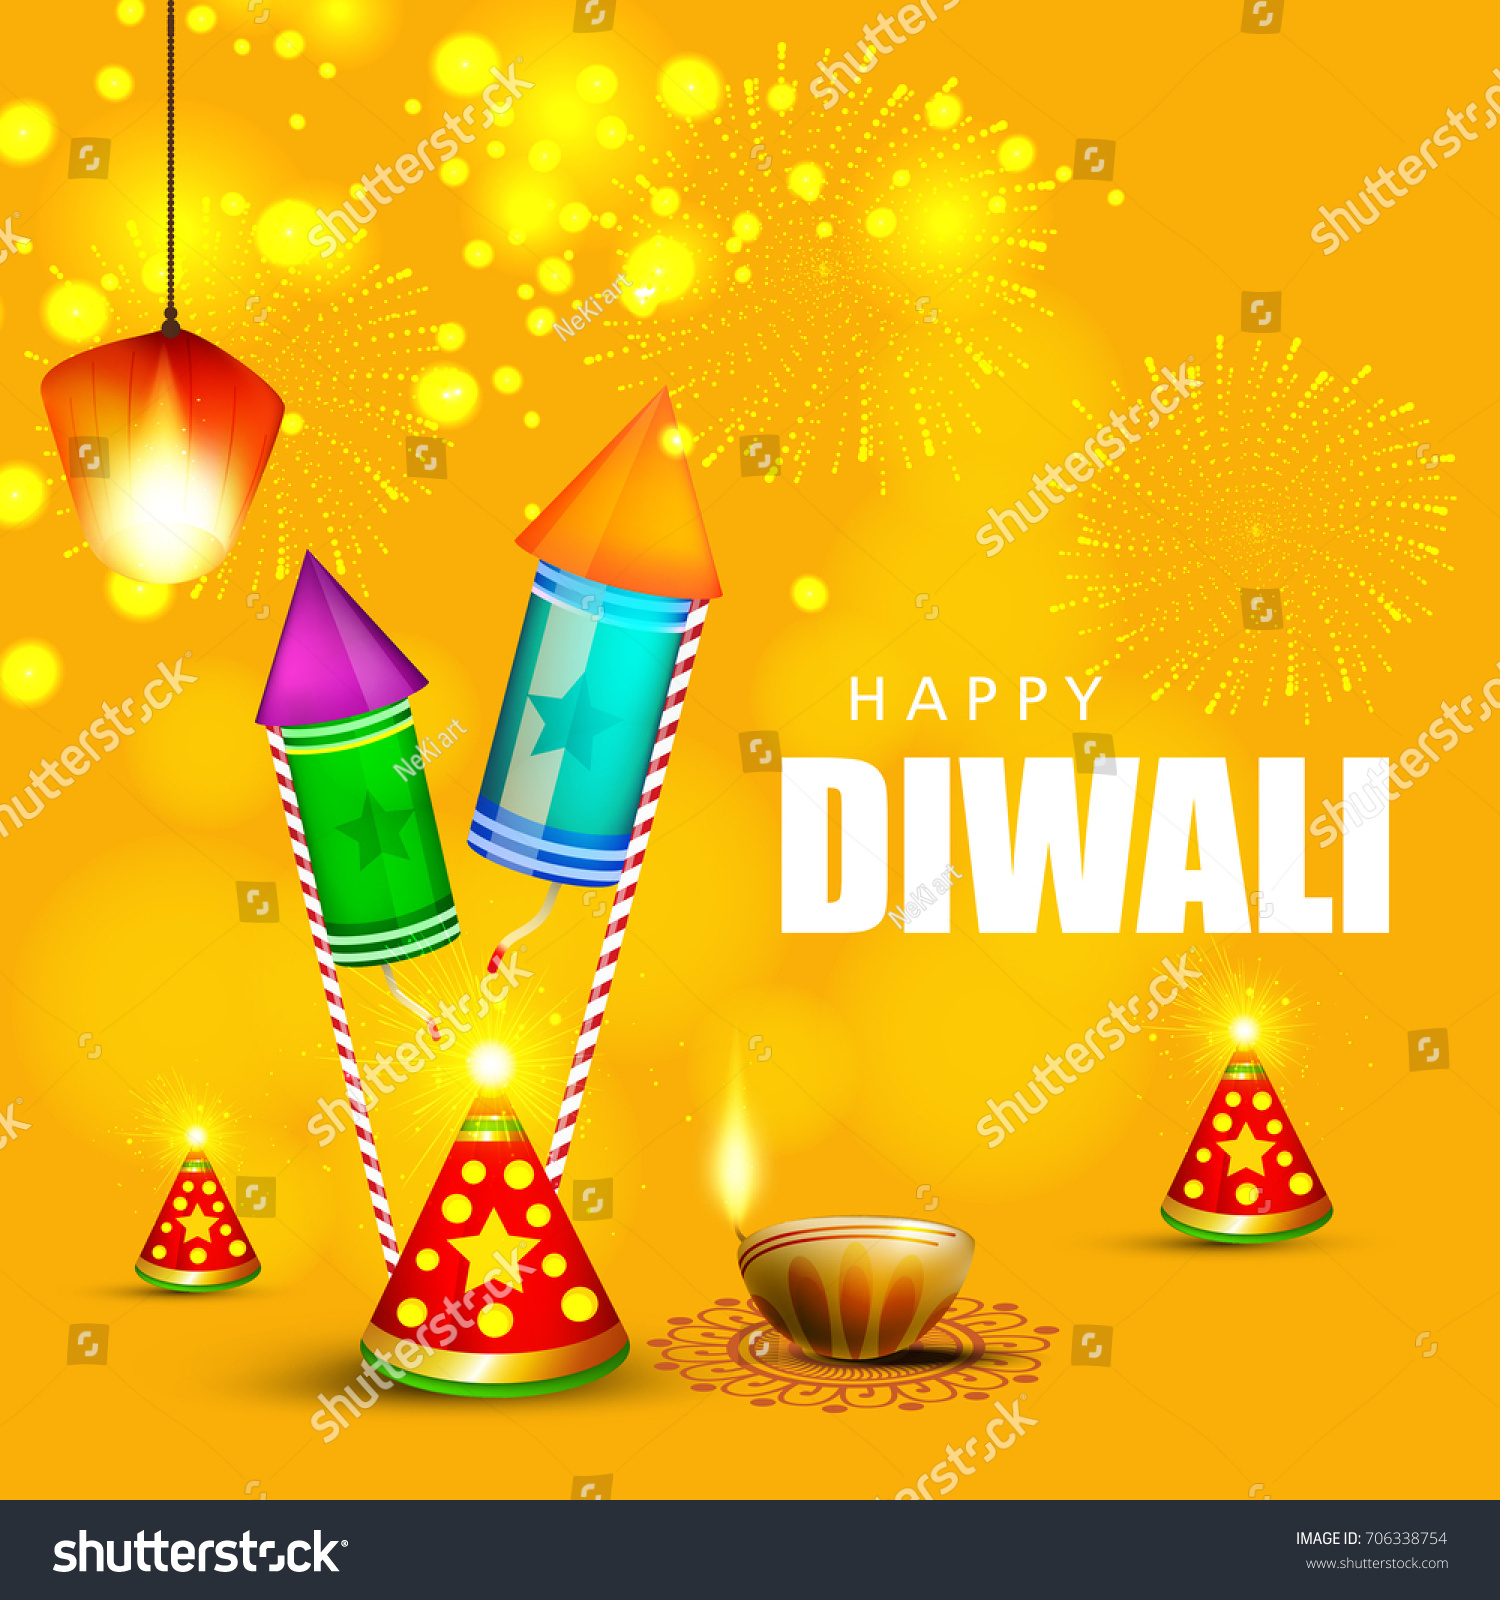 Creative greeting card design happy deepavali stock vector creative greeting card design for happy deepavali festival celebration on decorative background with floral rangoli design kristyandbryce Images